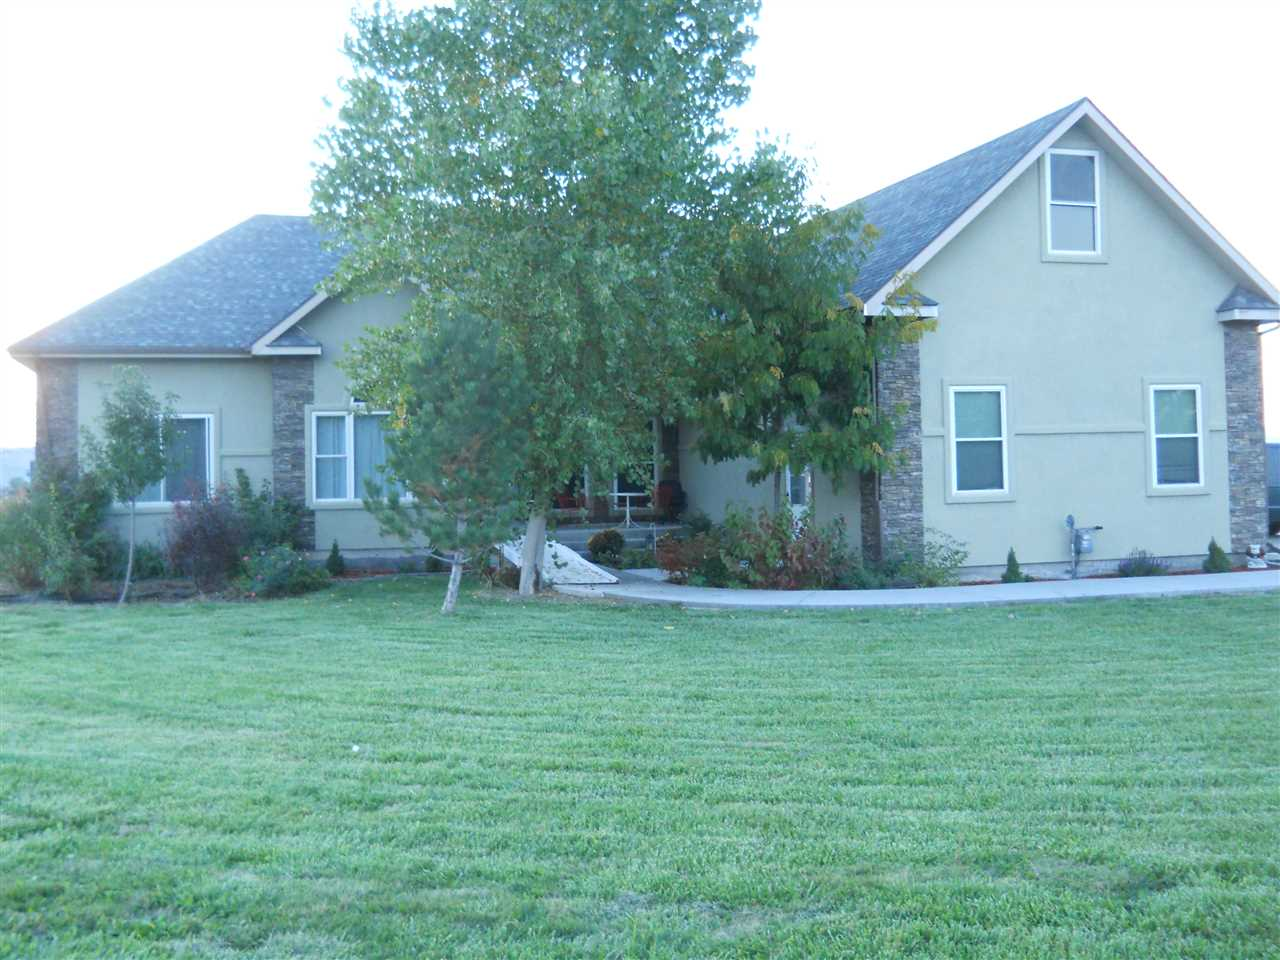 915 22 1/2 Road, Grand Junction, CO 81505